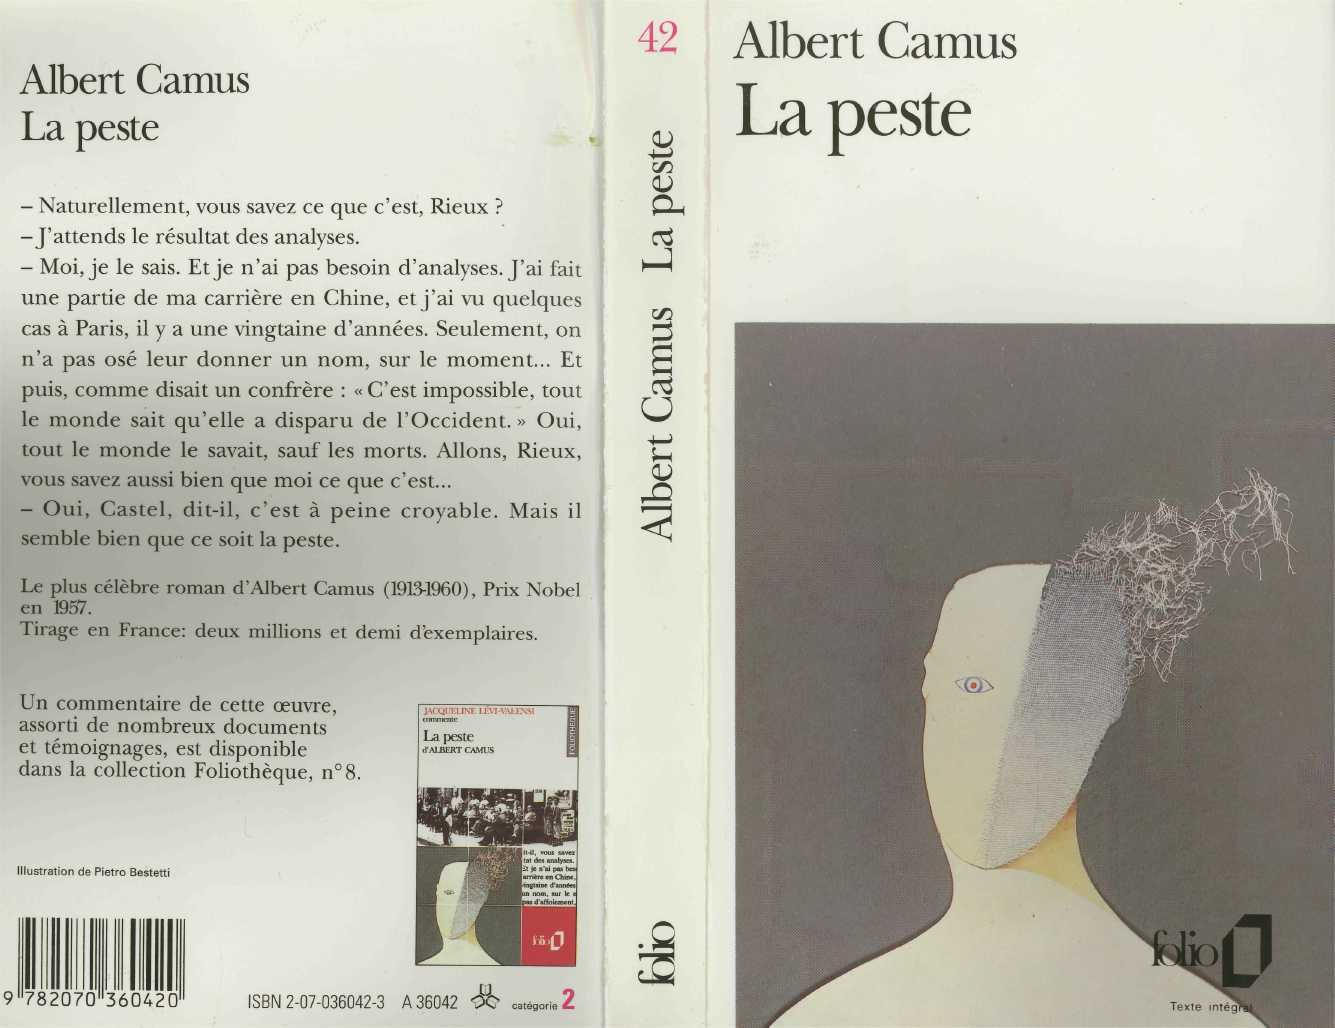 a literary analysis of the fall by albert camus Review: the outsider by albert camus the outsider (1942) is one of the best known existential novels, and albert camus's early attempt to grapple with absurdism, and relay it in an abstract, accessible form.